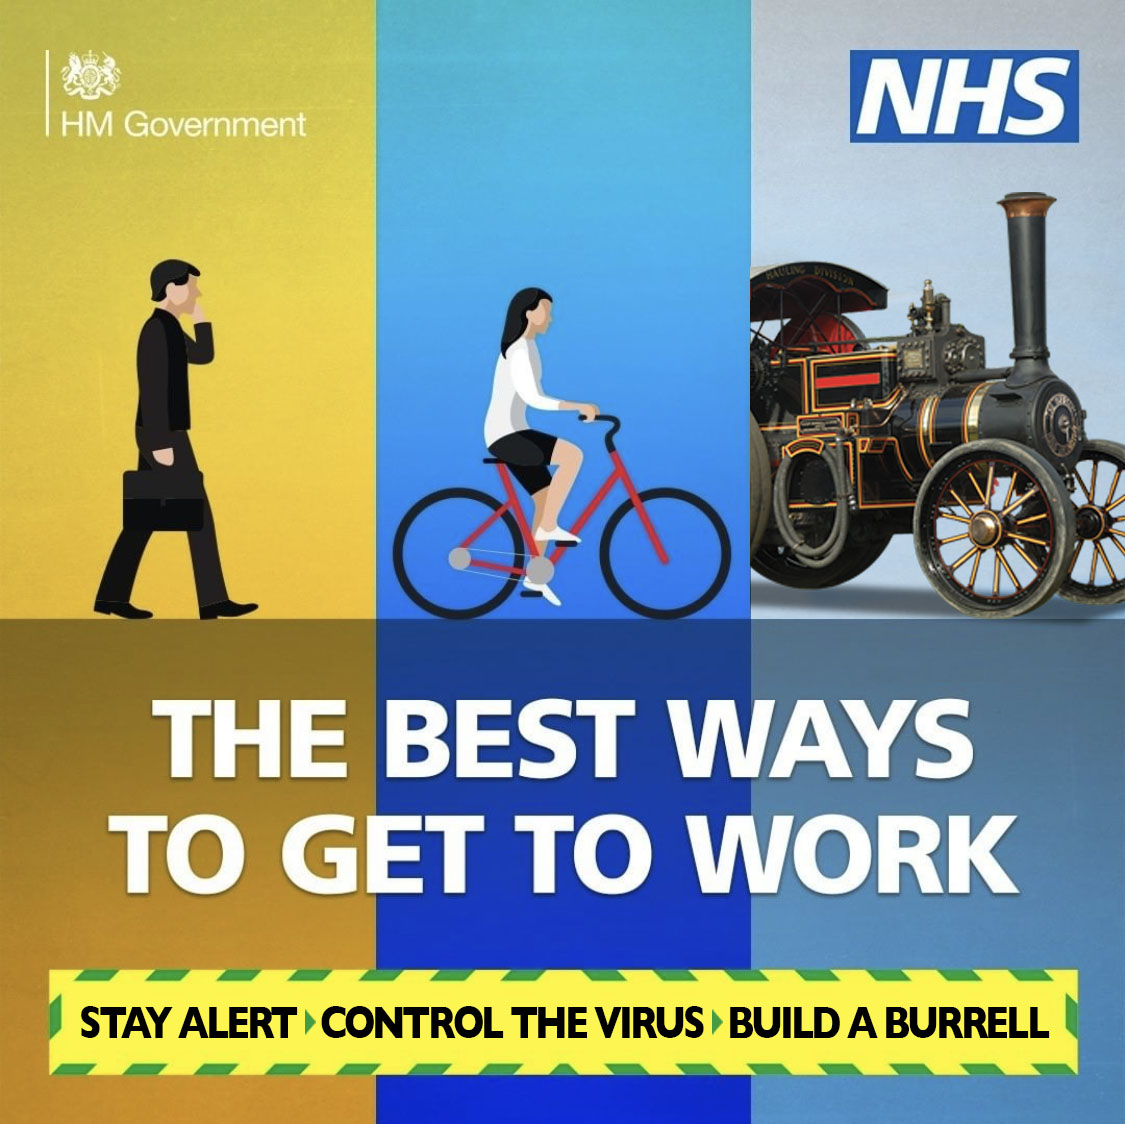 The best ways to get to work